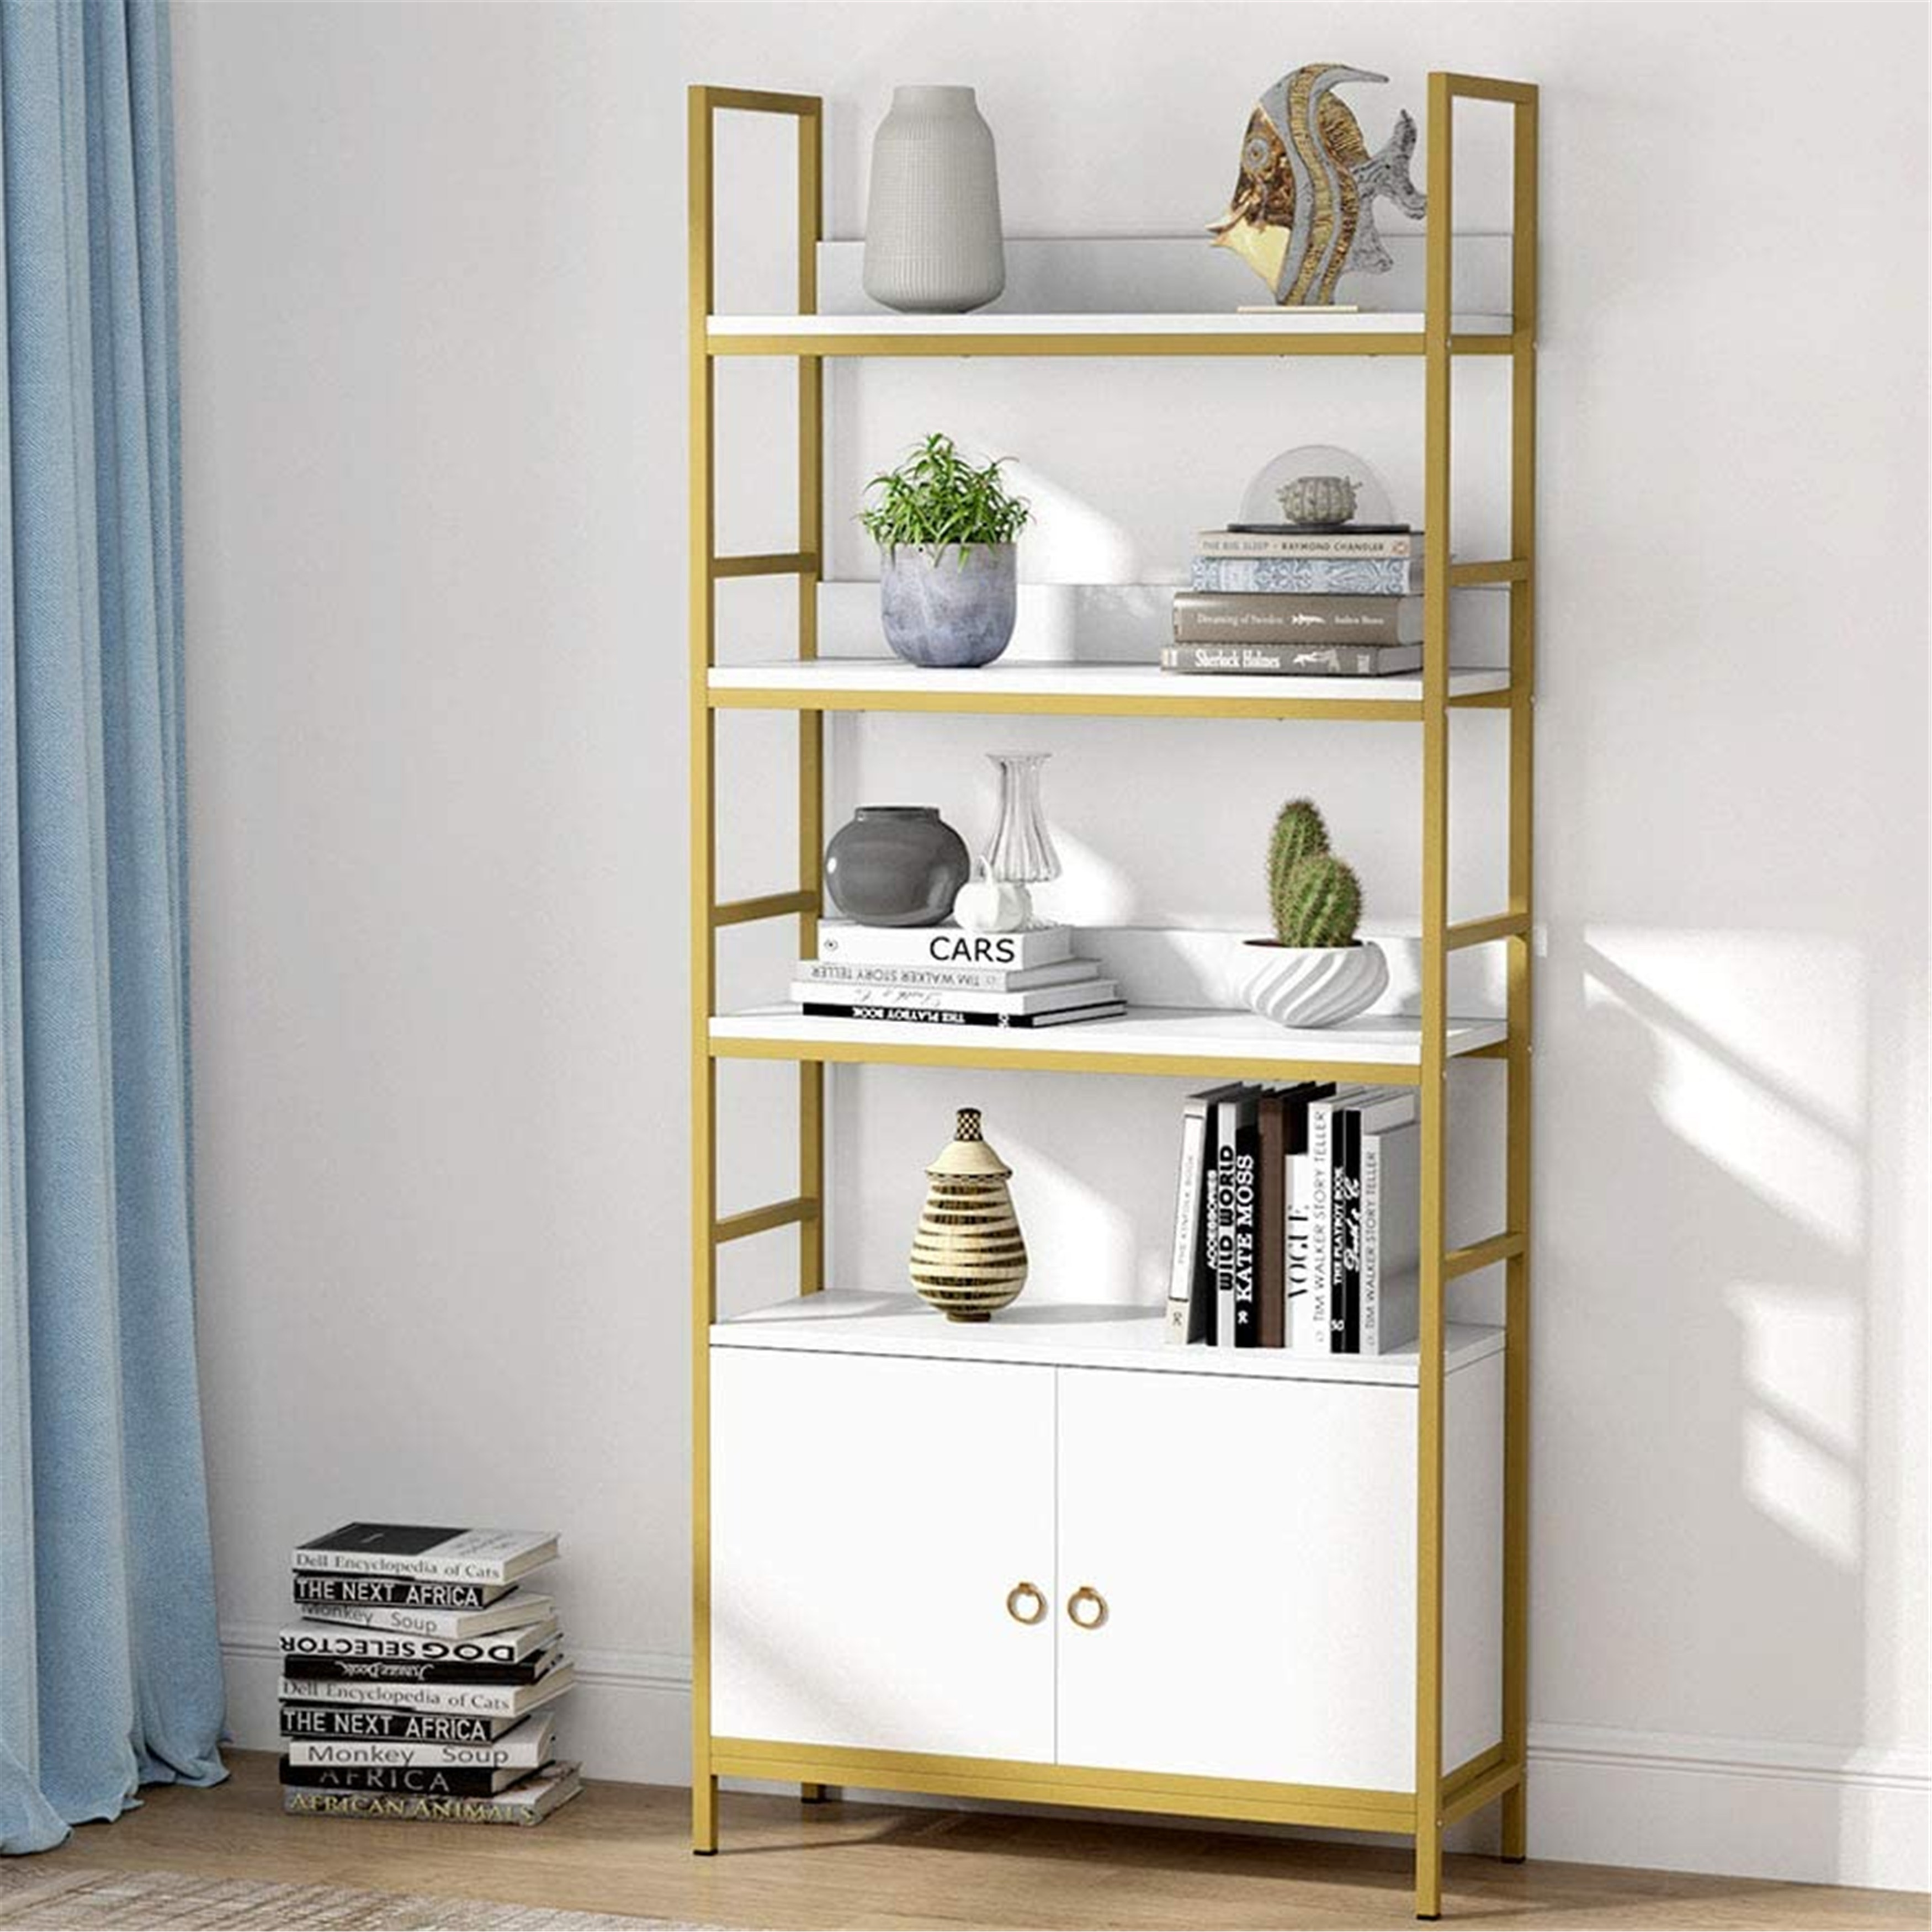 4 Tier Bookcase With Door White Etagere Standard Bookcase With Cabinet On Sale Overstock 30531537